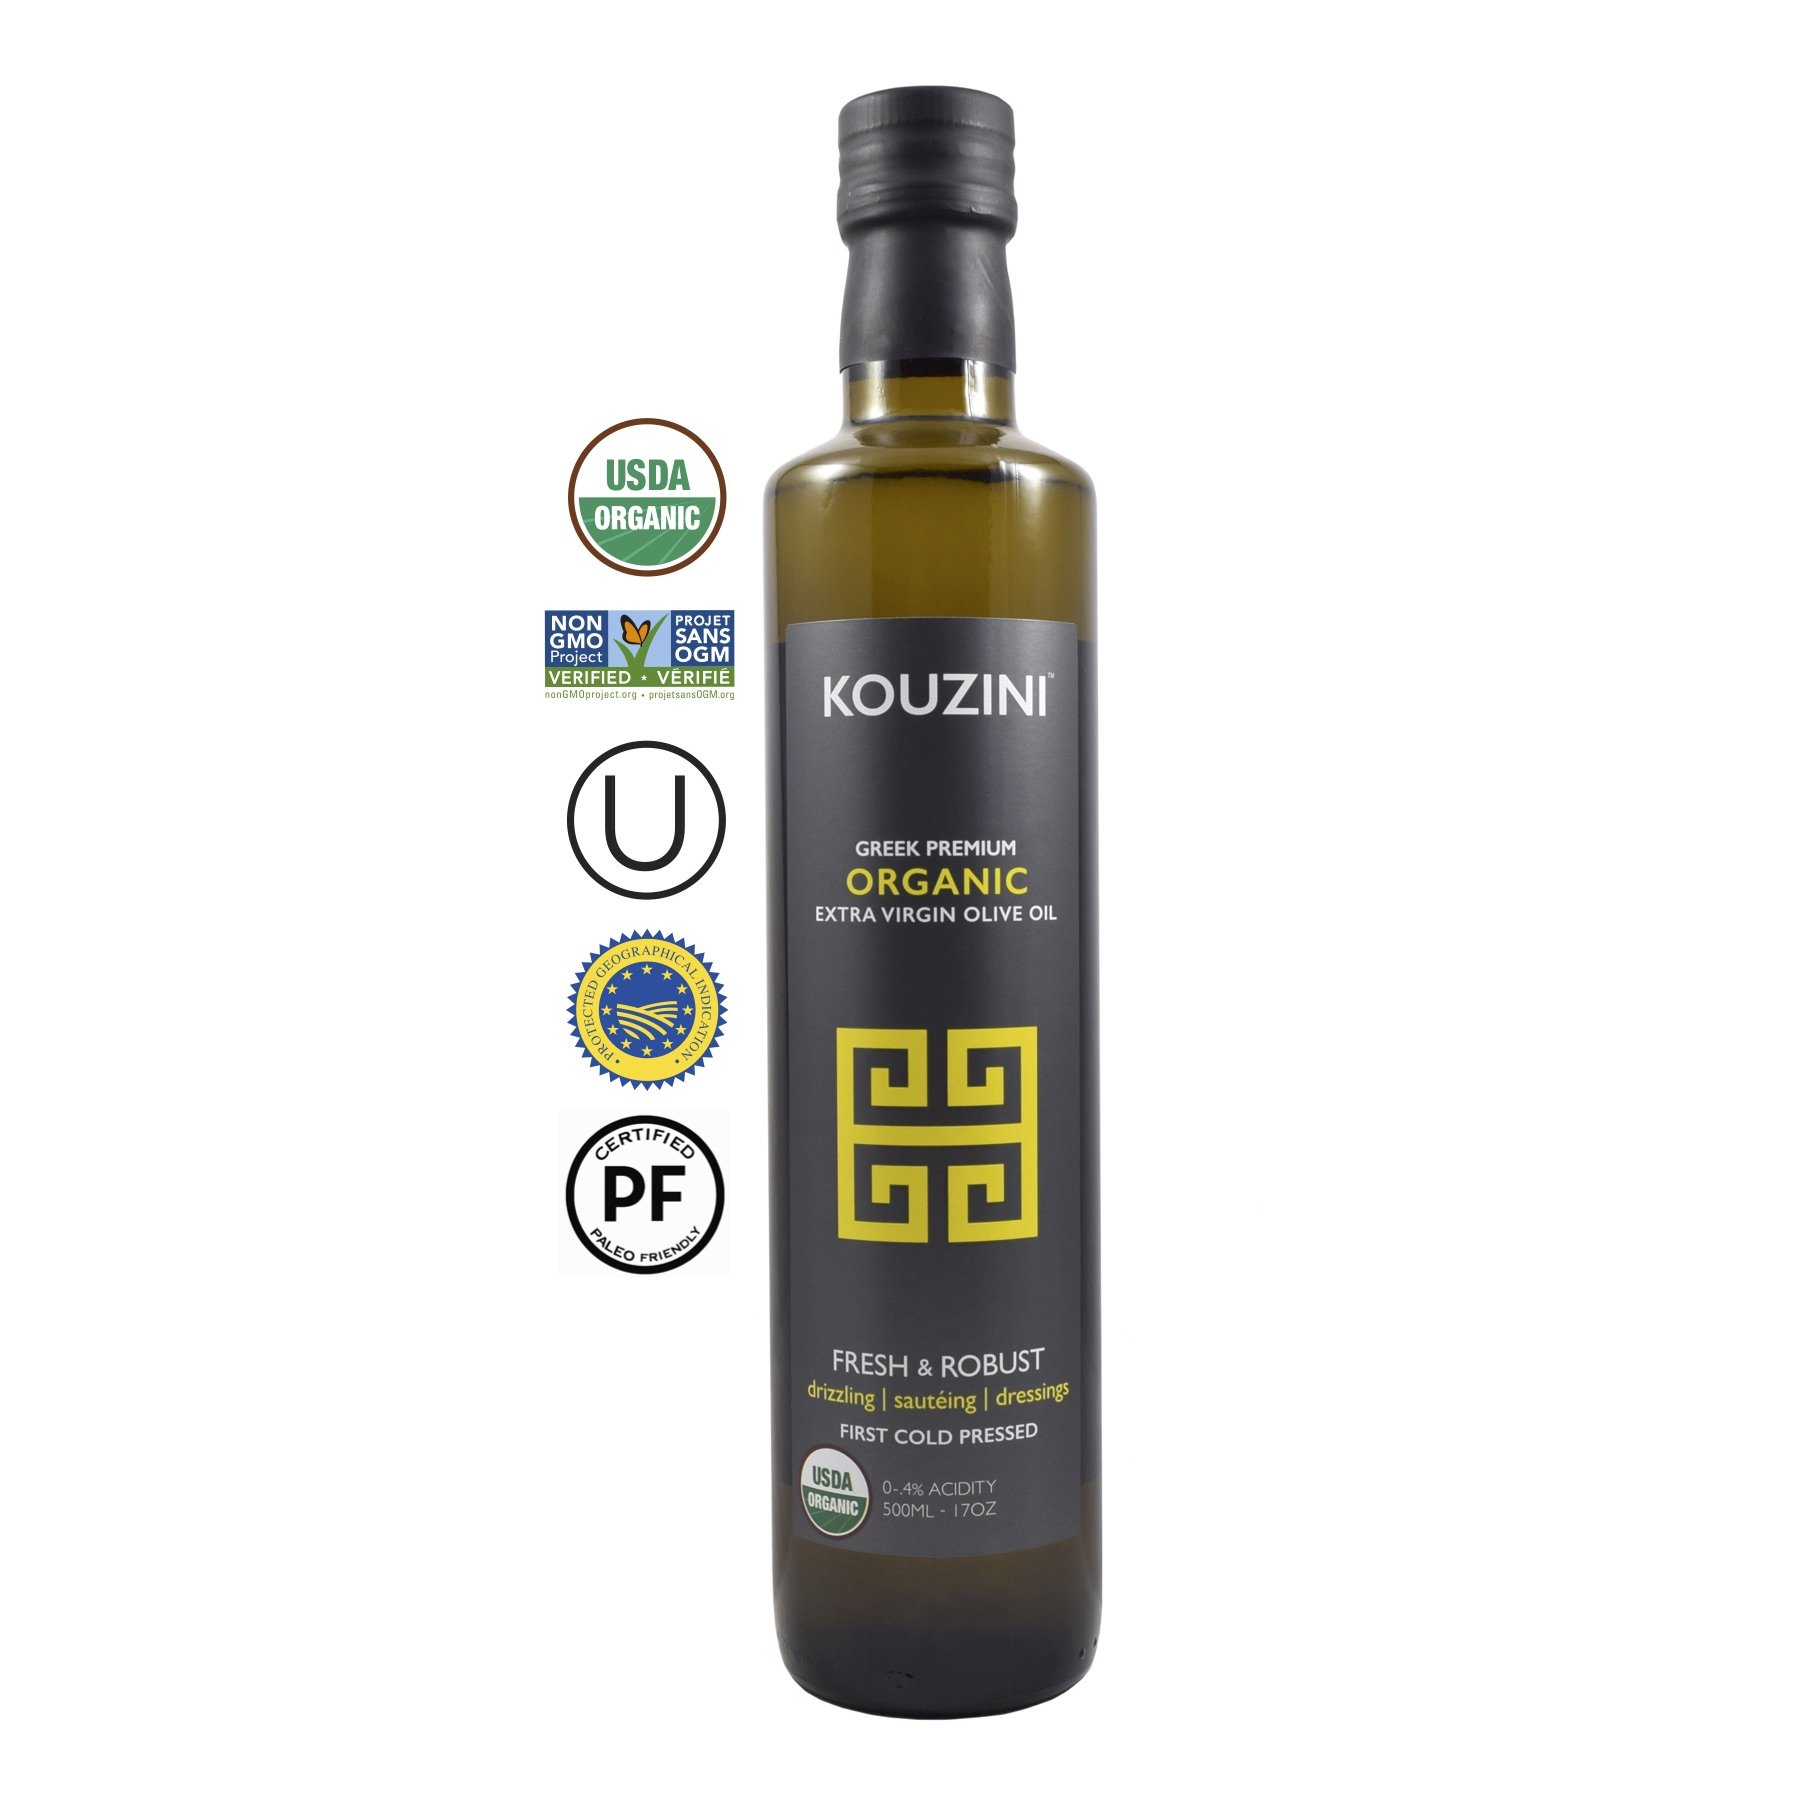 Organic Kouzini Extra Virgin Greek Olive Oil 500ml Current year harvest by Kouzini